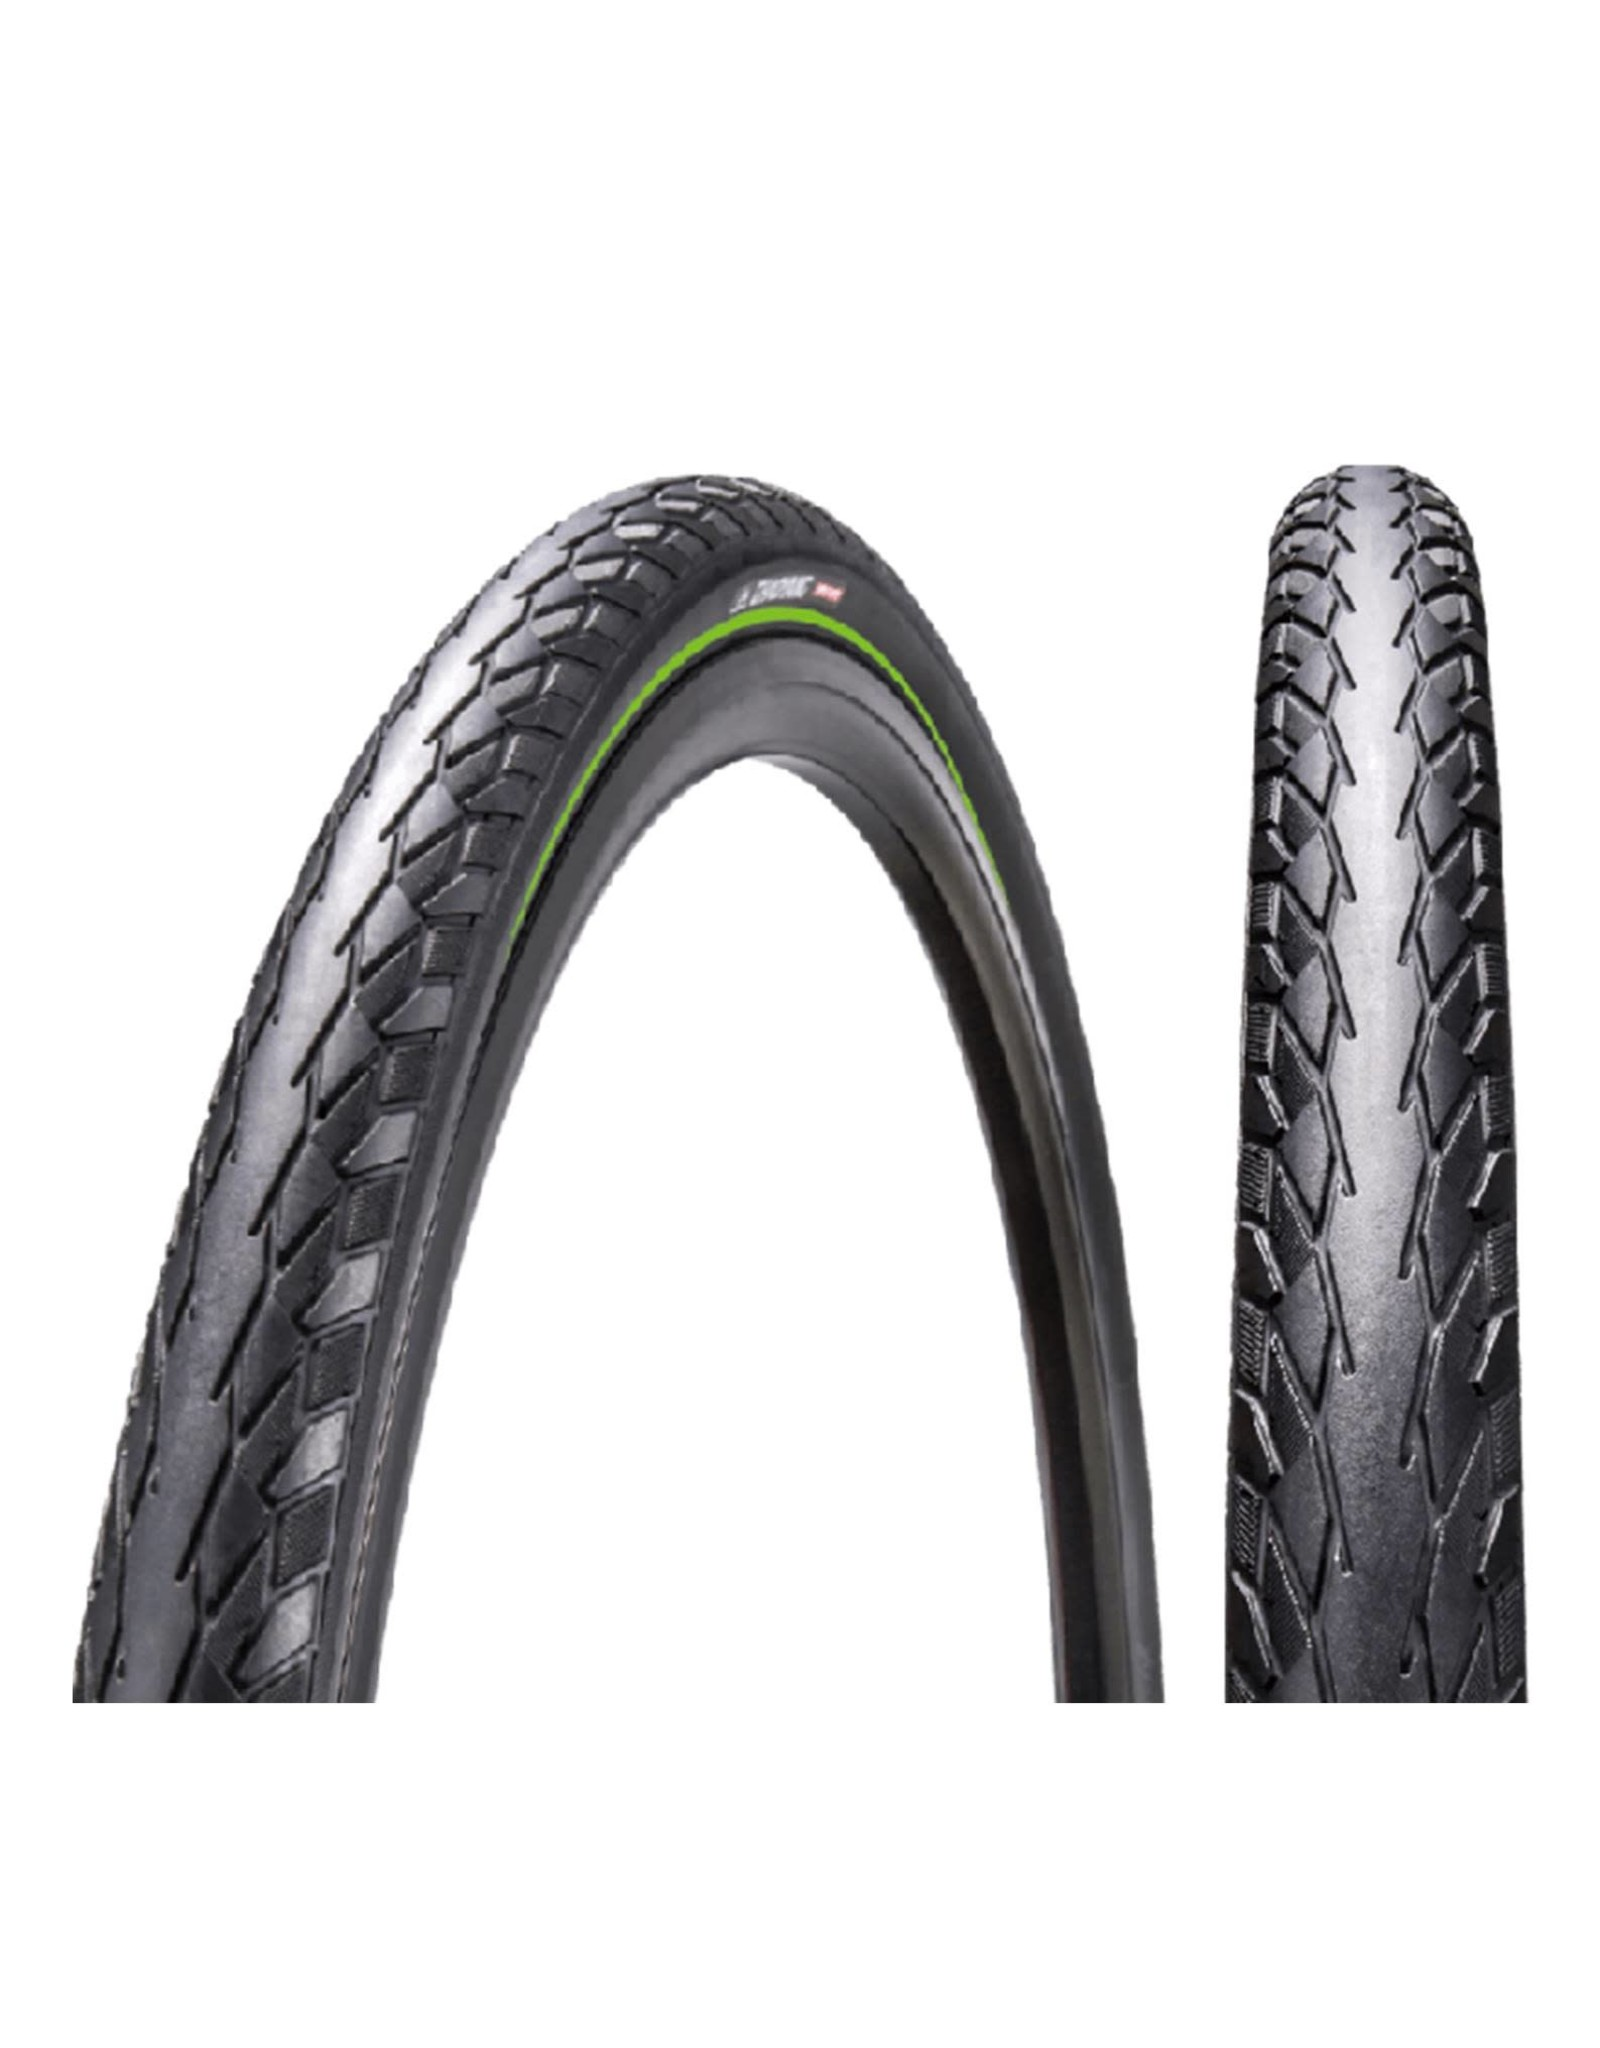 Chaoyang E-Liner City Sprint 700 x 35 5mm Tyre